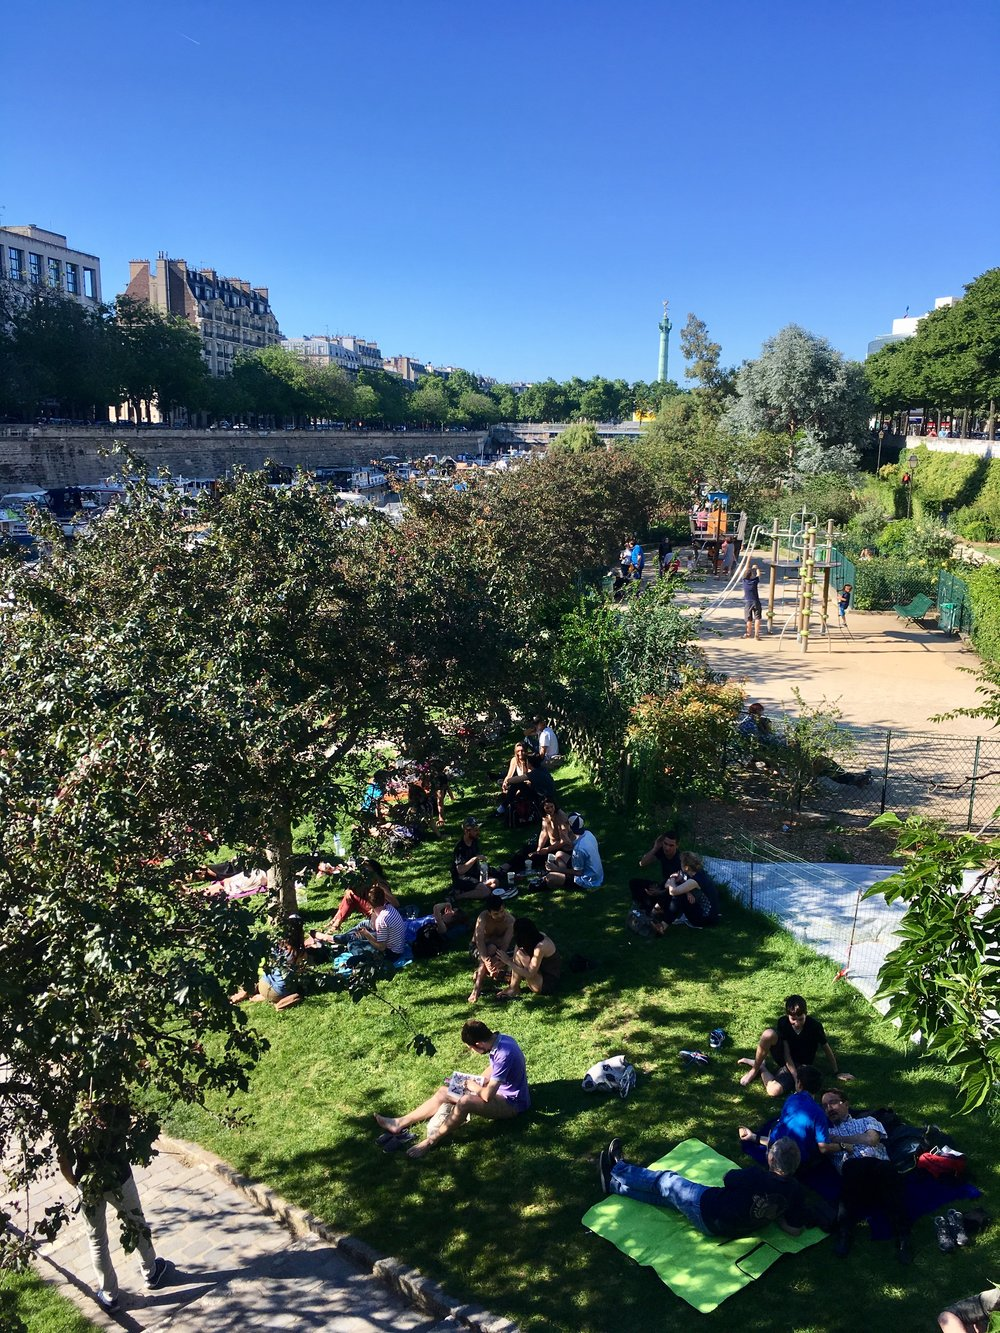 Sun's out, fun's out. Paris is lined with beautifully manicured parks and paths and the Parisians take full advantage of them, especially when the weather is nice.